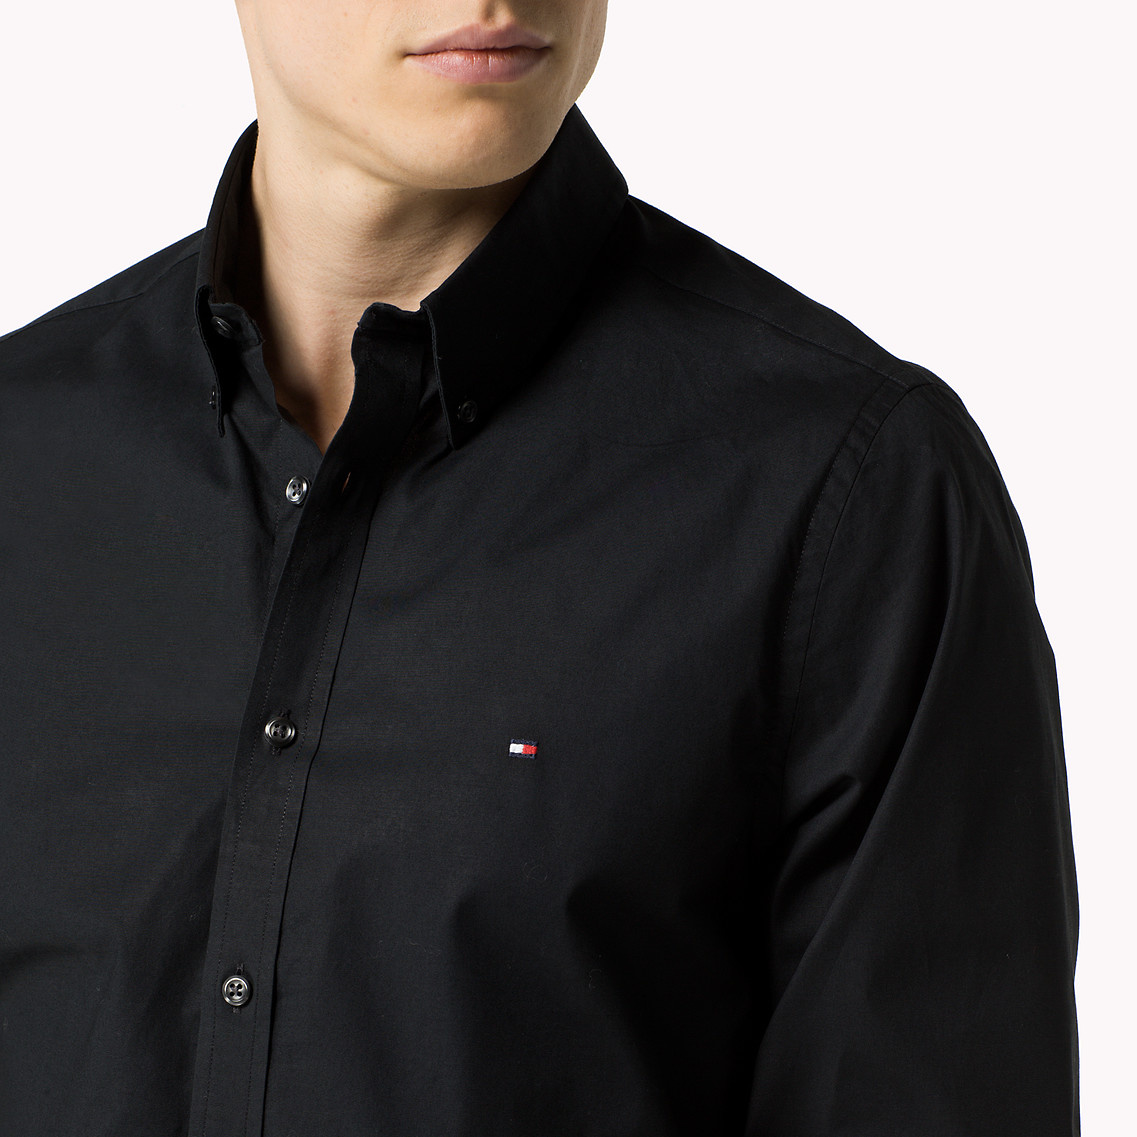 be8c1e49c Tommy Hilfiger Stretch Cotton Slim Fit Shirt in Black for Men - Lyst